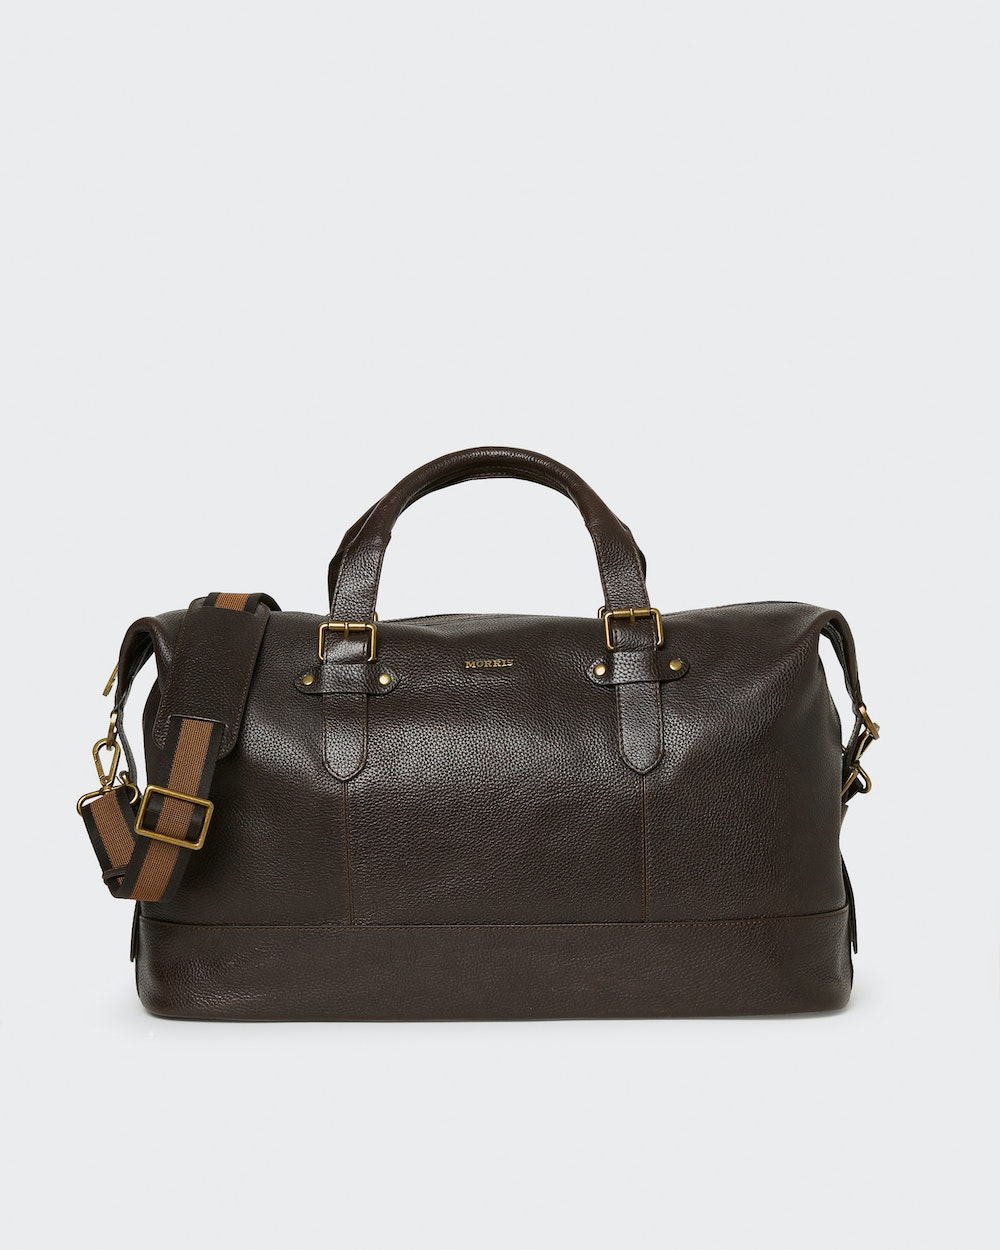 Christopher weekend bag Dark brown Morris